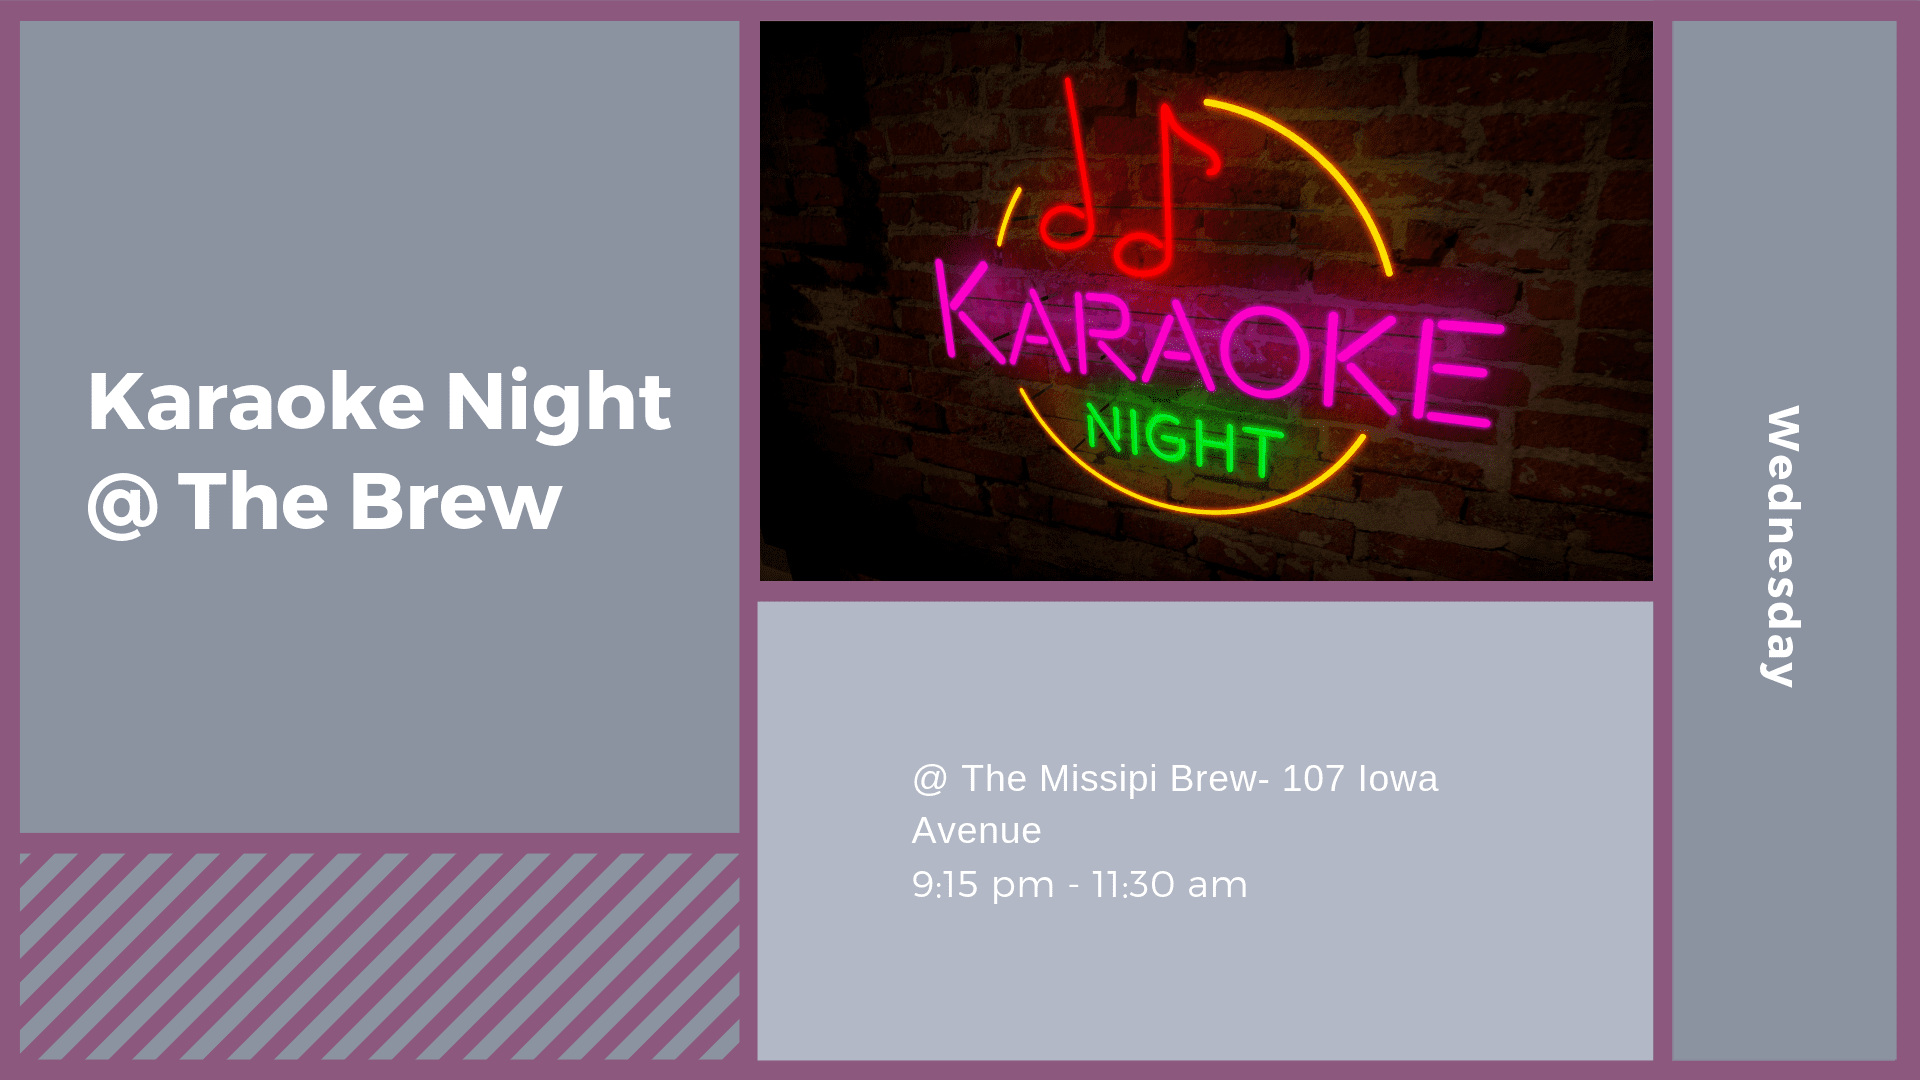 Karaoke Night @ the Brew